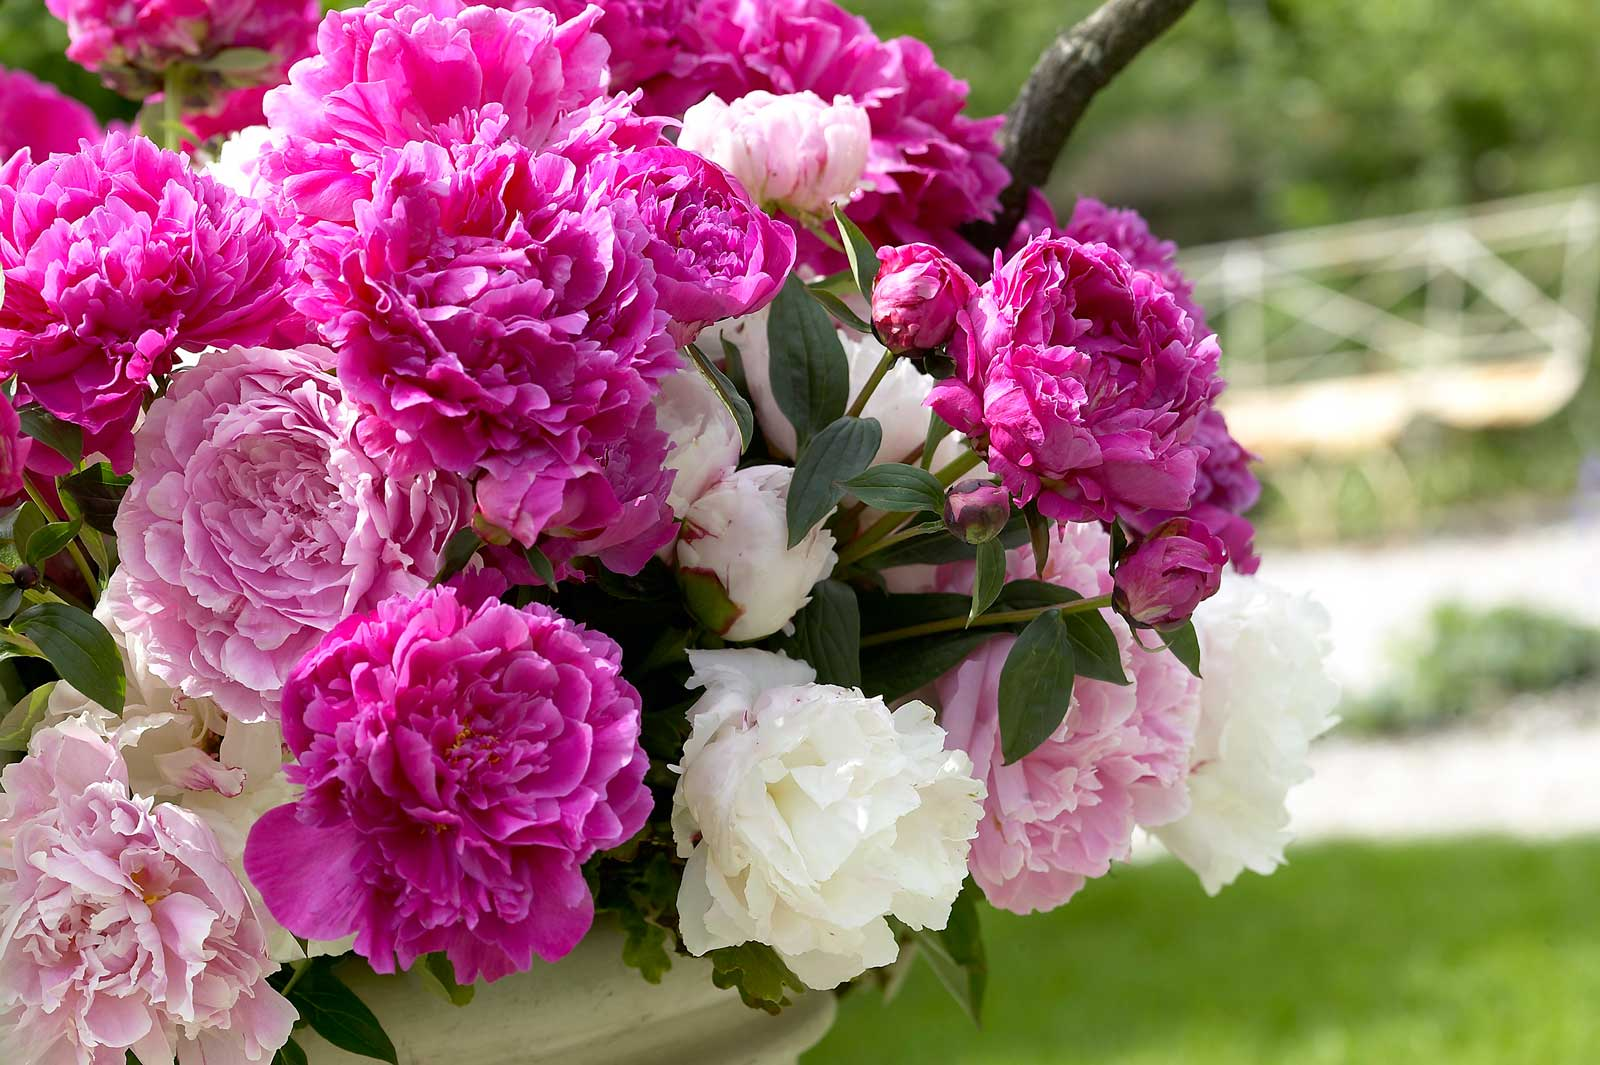 mixed-herbaceous-peony-bouquet.jpg